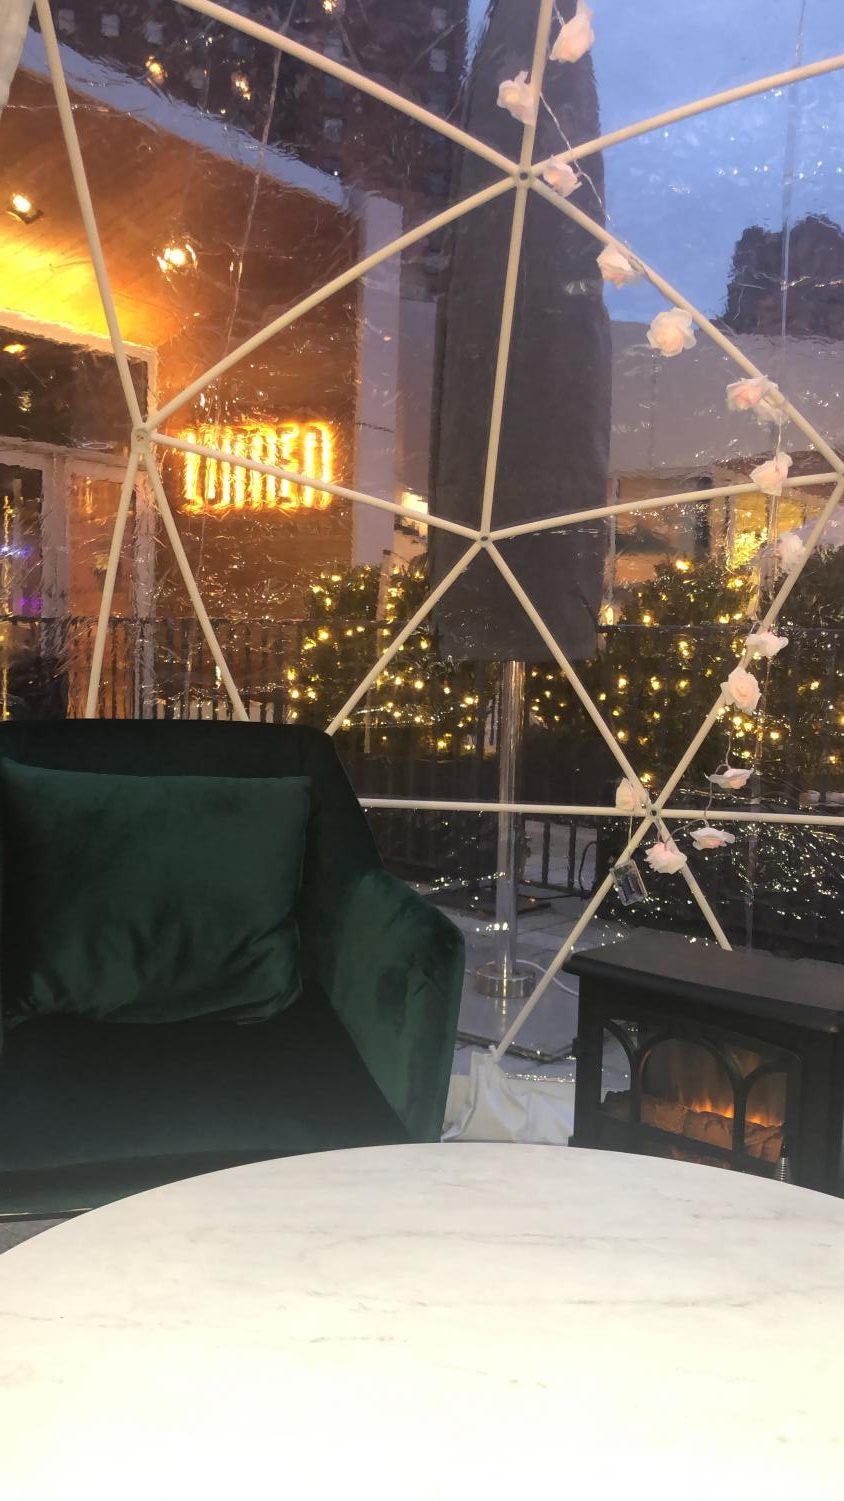 Lumen's heated igloos allow for a unique and spirited Detroit experience.